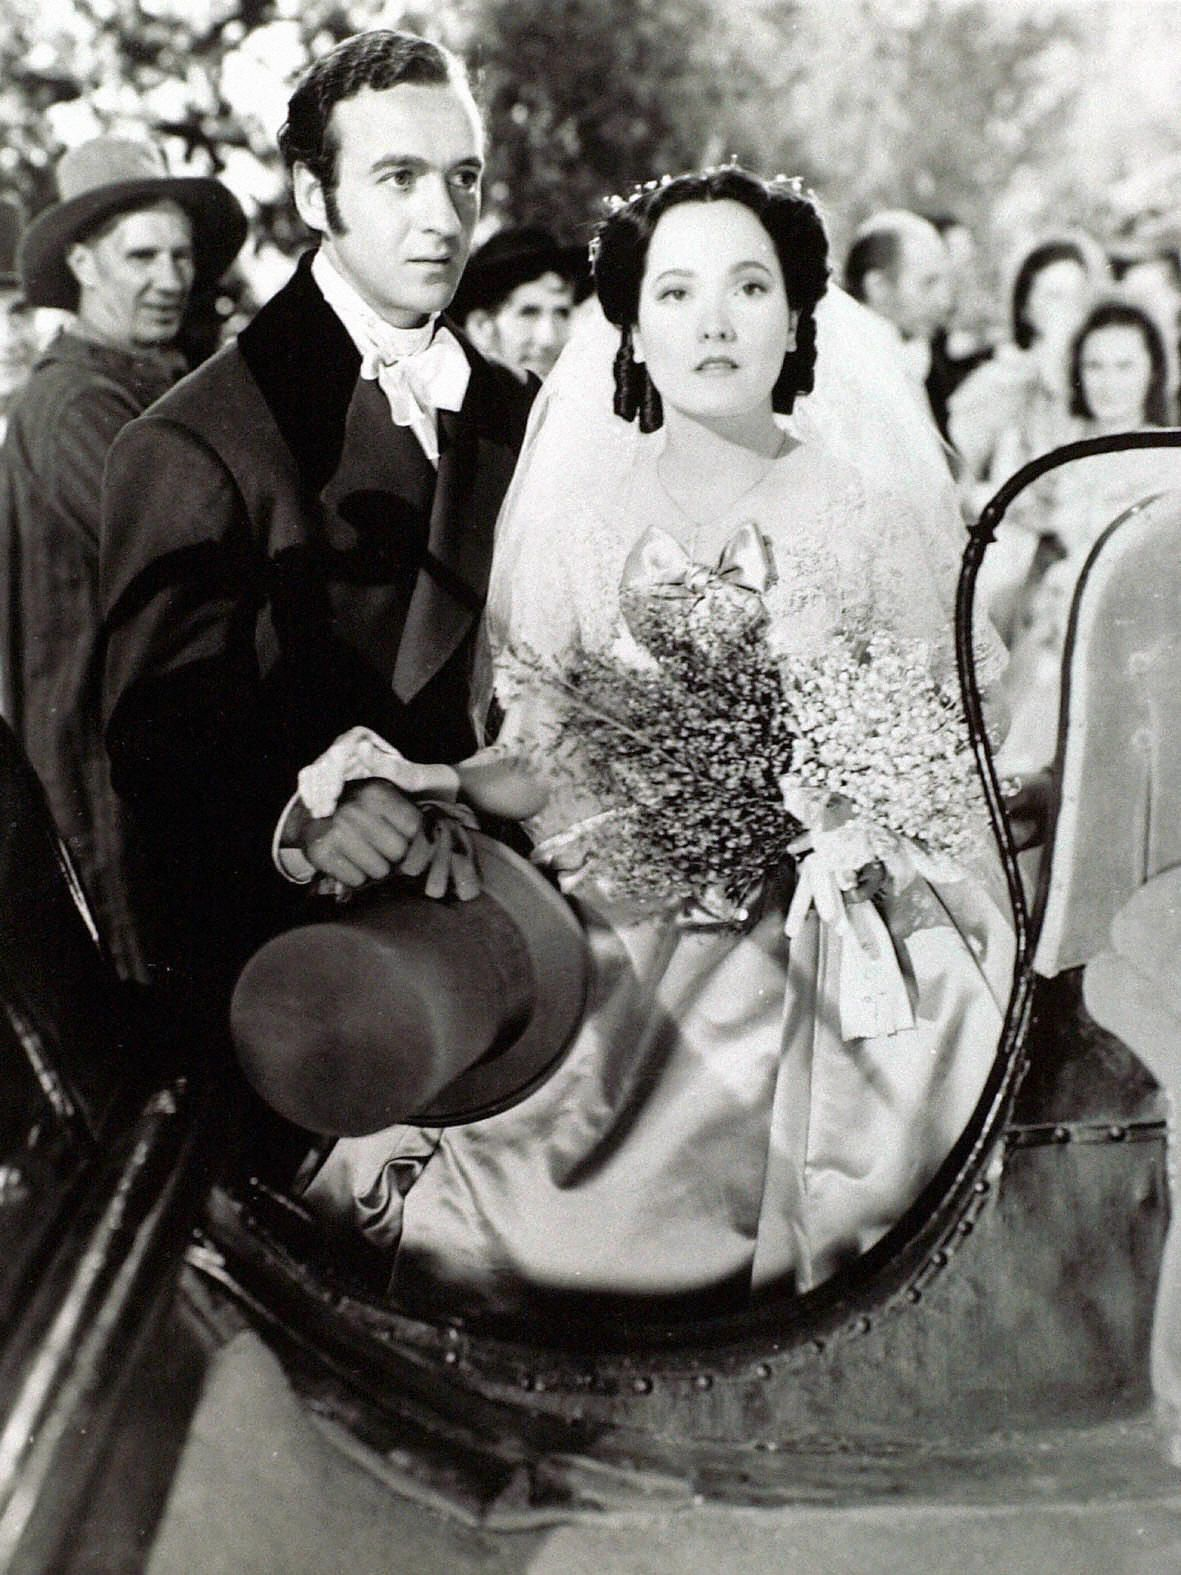 Wuthering Heights (1939) David Niven and Merle Oberon